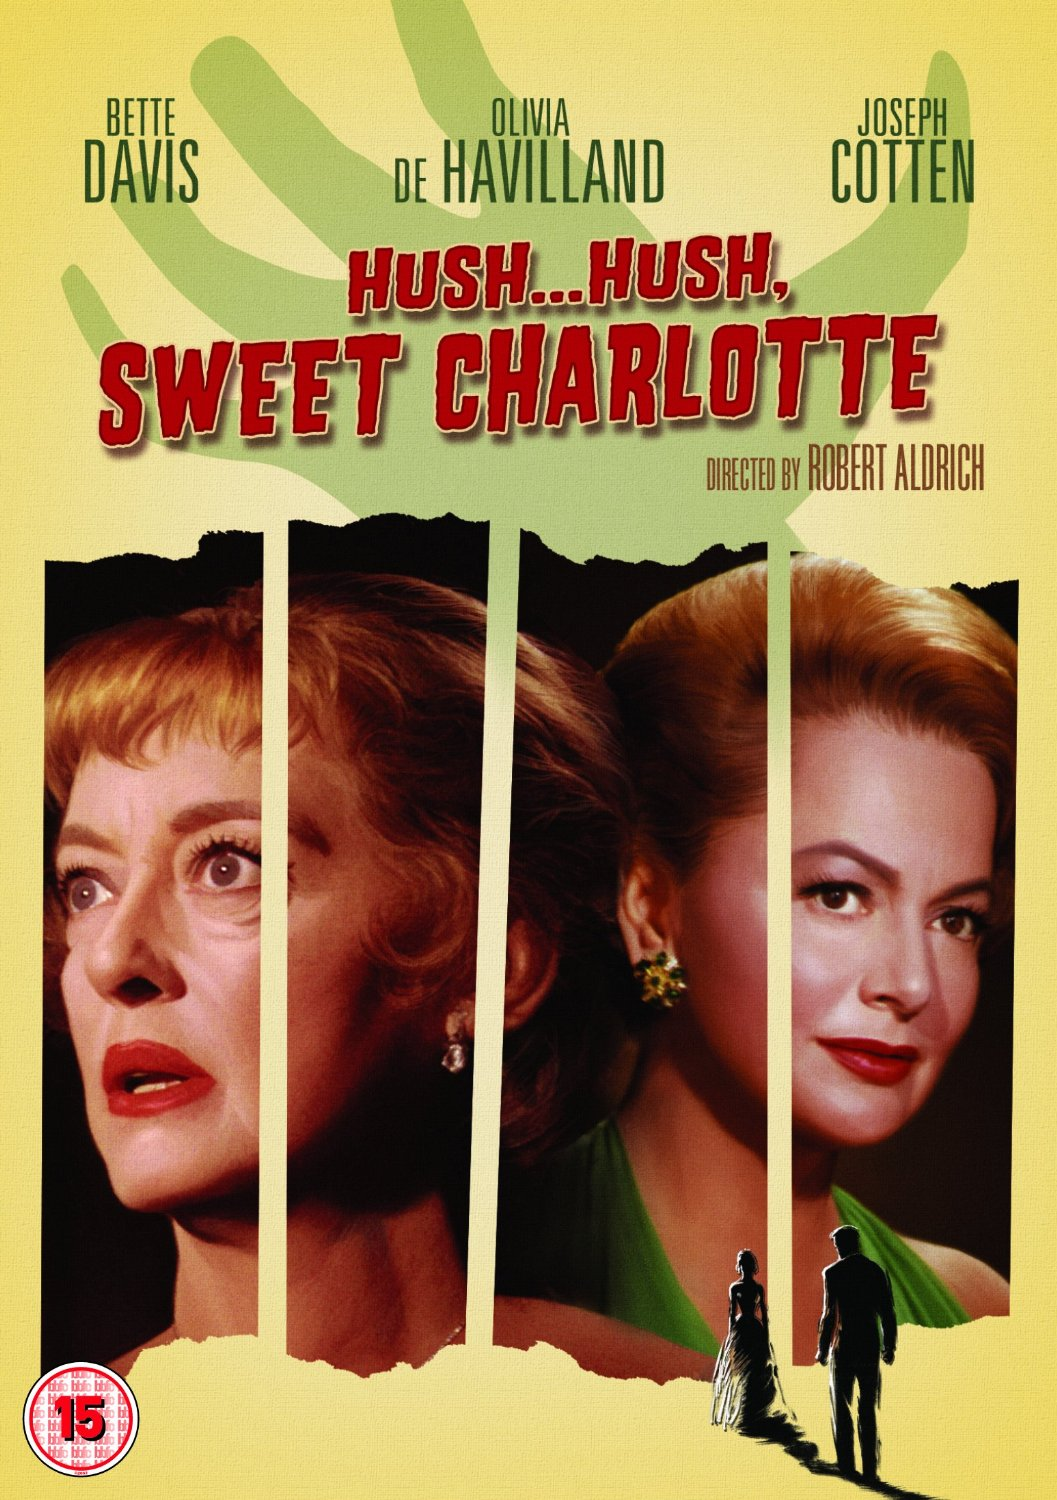 Buy Hush...Hush, Sweet Charlotte